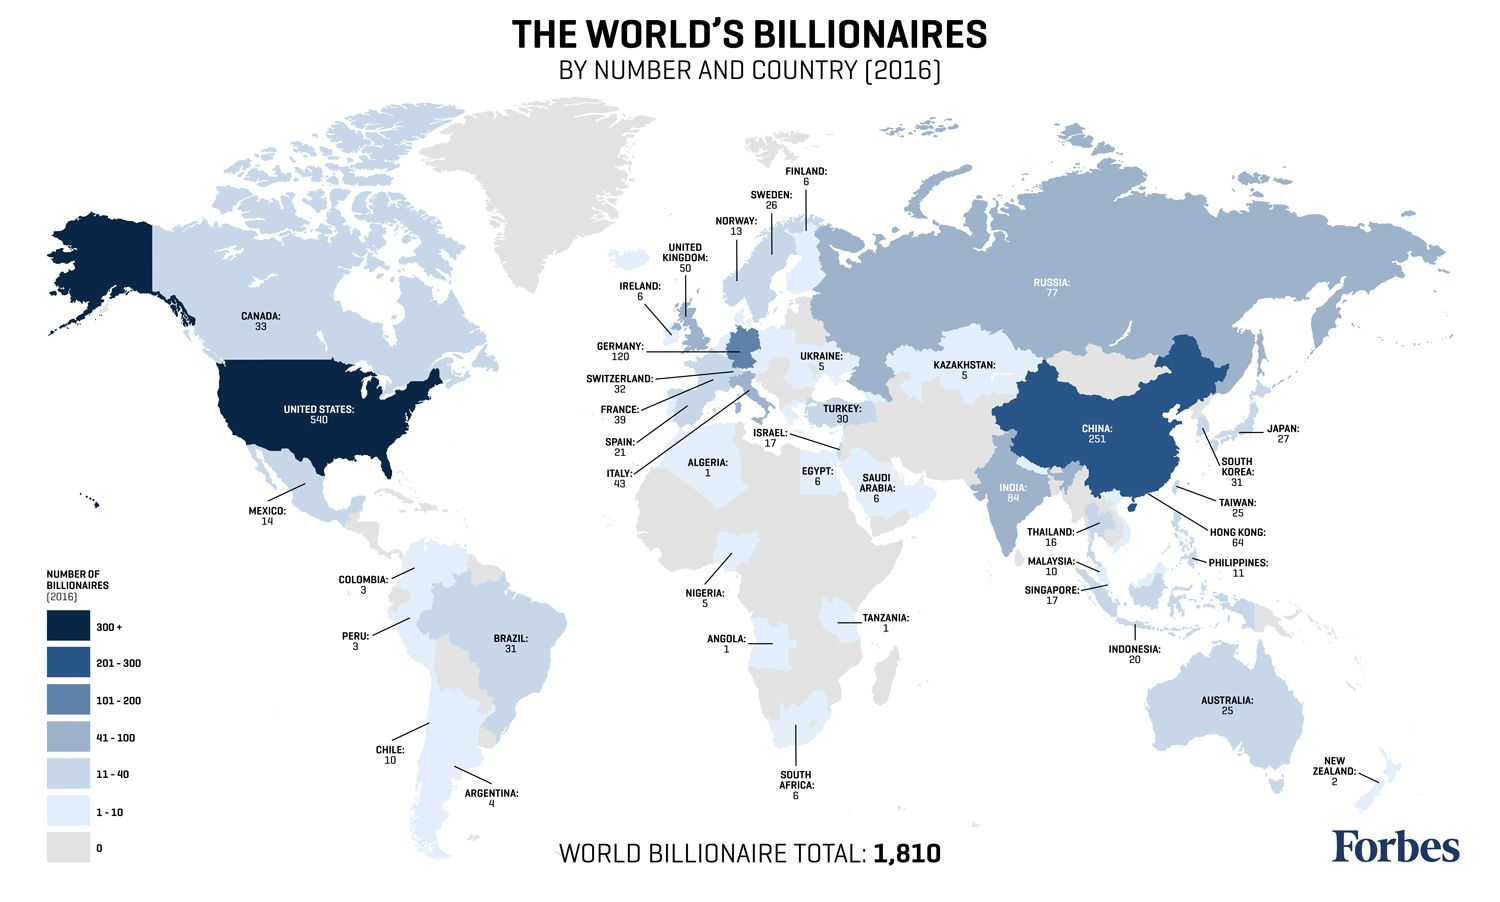 Billionaires list map 2016 billionaire population by country billionaires list map 2016 billionaire population by country gumiabroncs Image collections